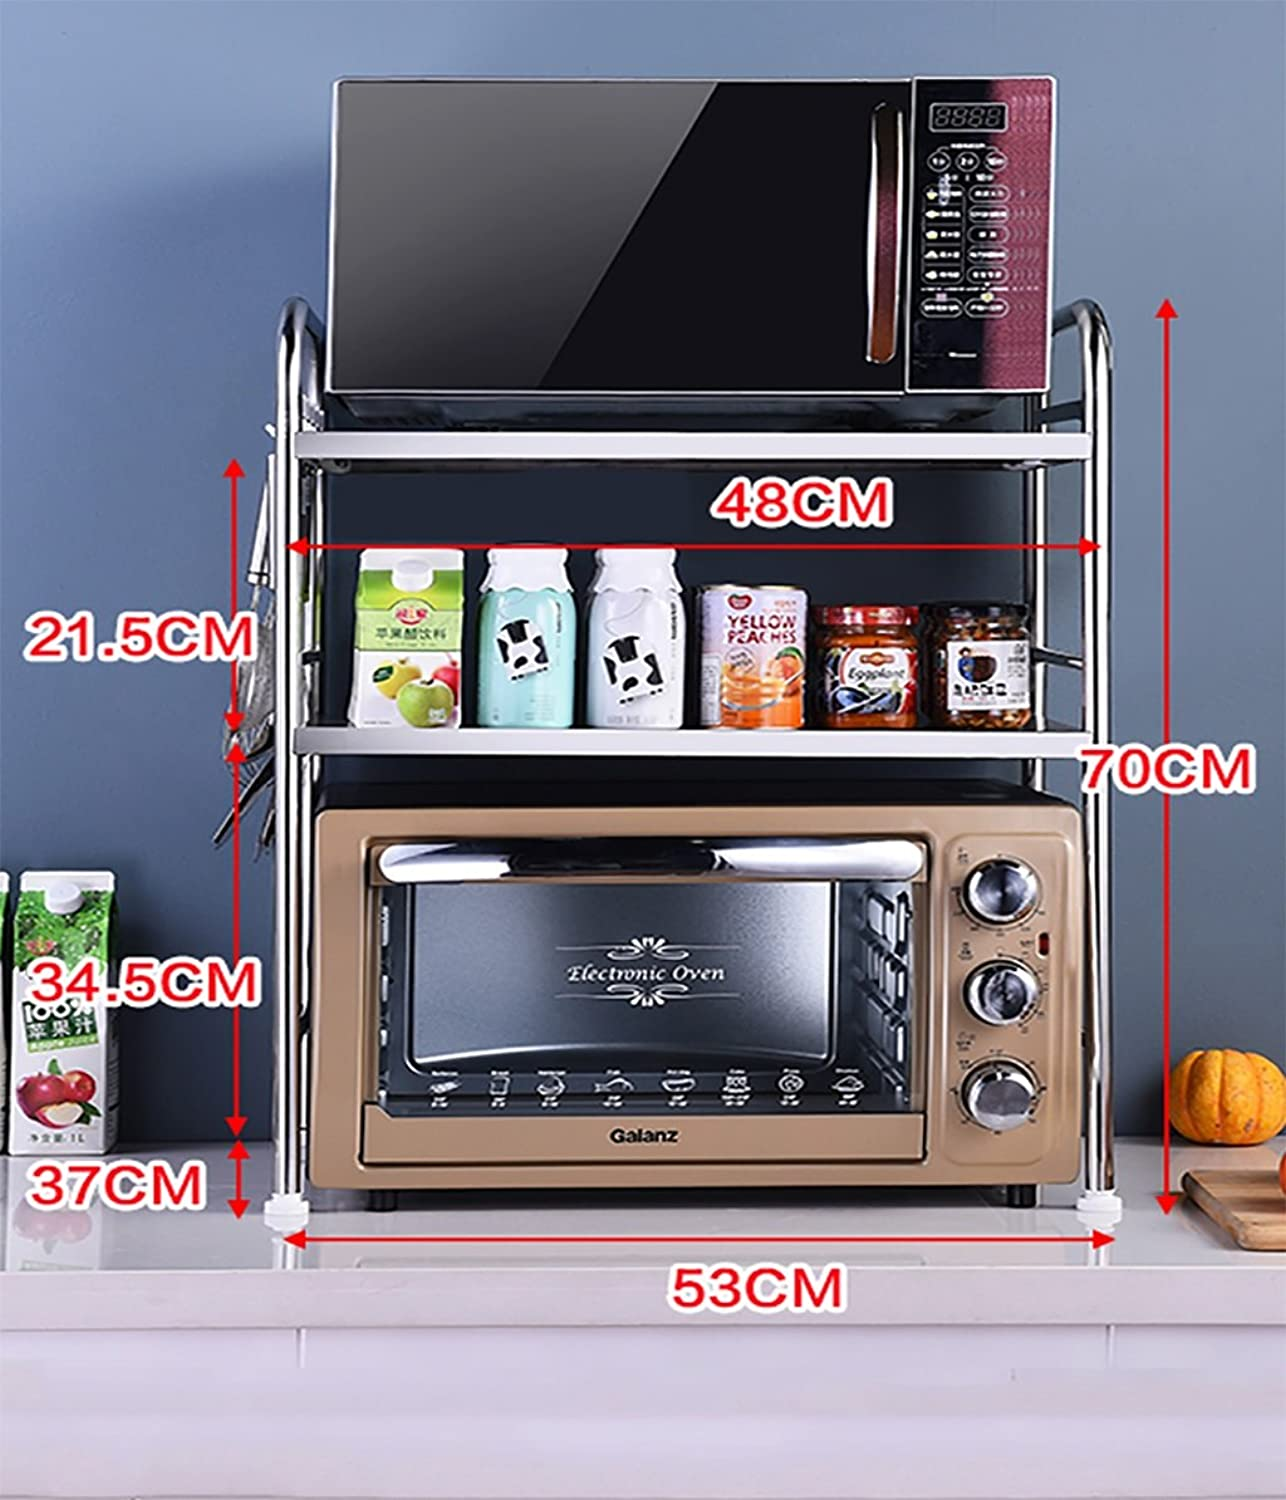 Kitchen Shelf Stainless Steel Microwave Oven Rack Kitchen Counter and Cabinet Shelf Kitchen Storage Racks (Size   53cm37cm70cm)